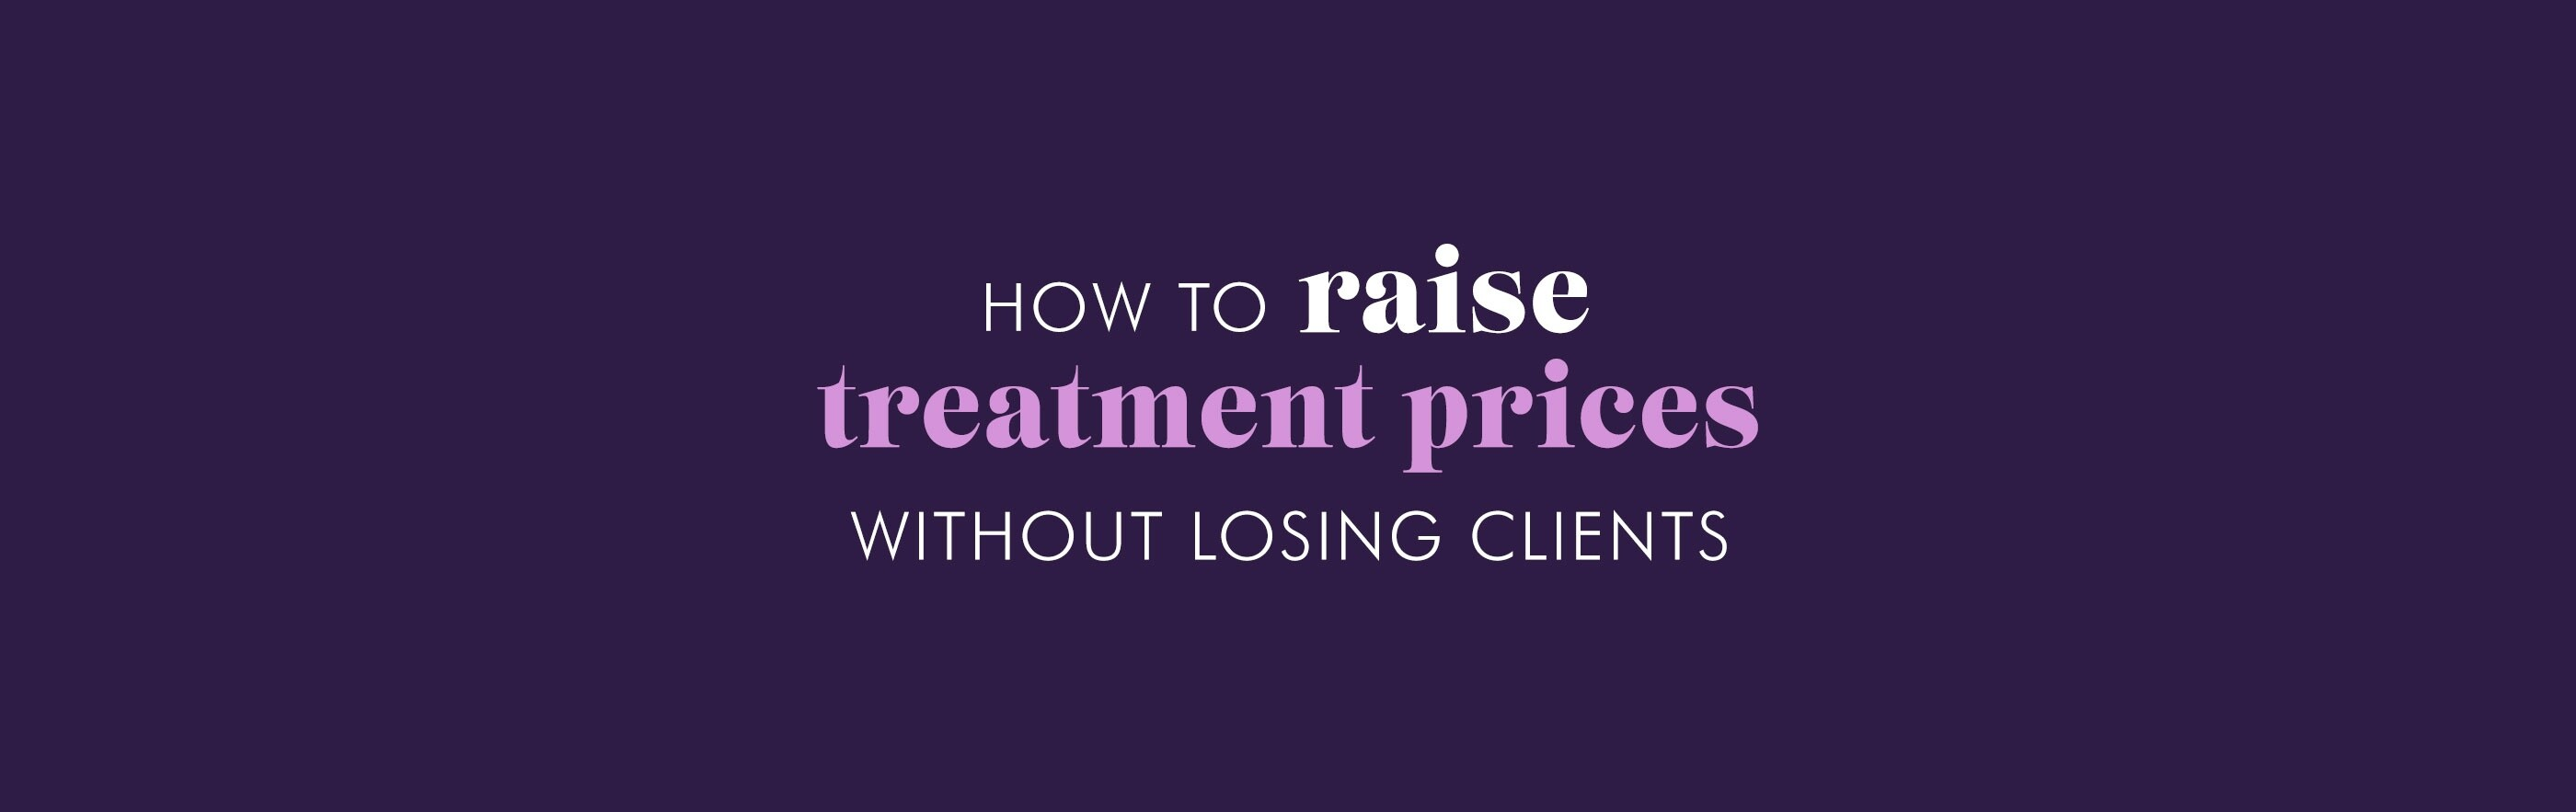 How to raise treatment prices without losing clients